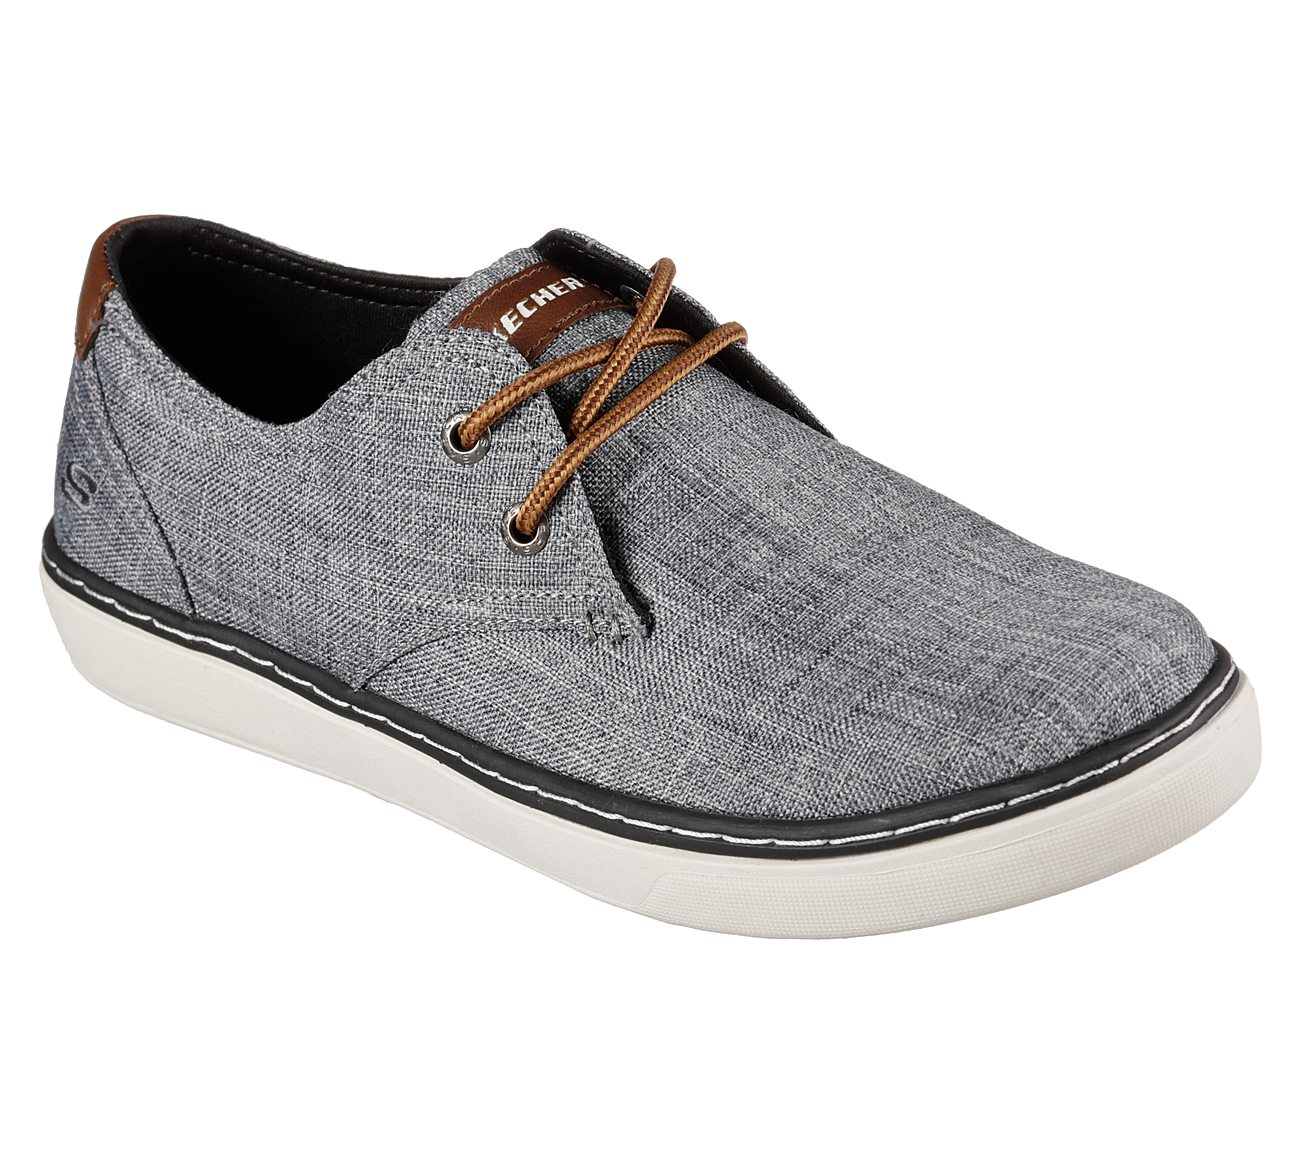 skechers relax fit shoes